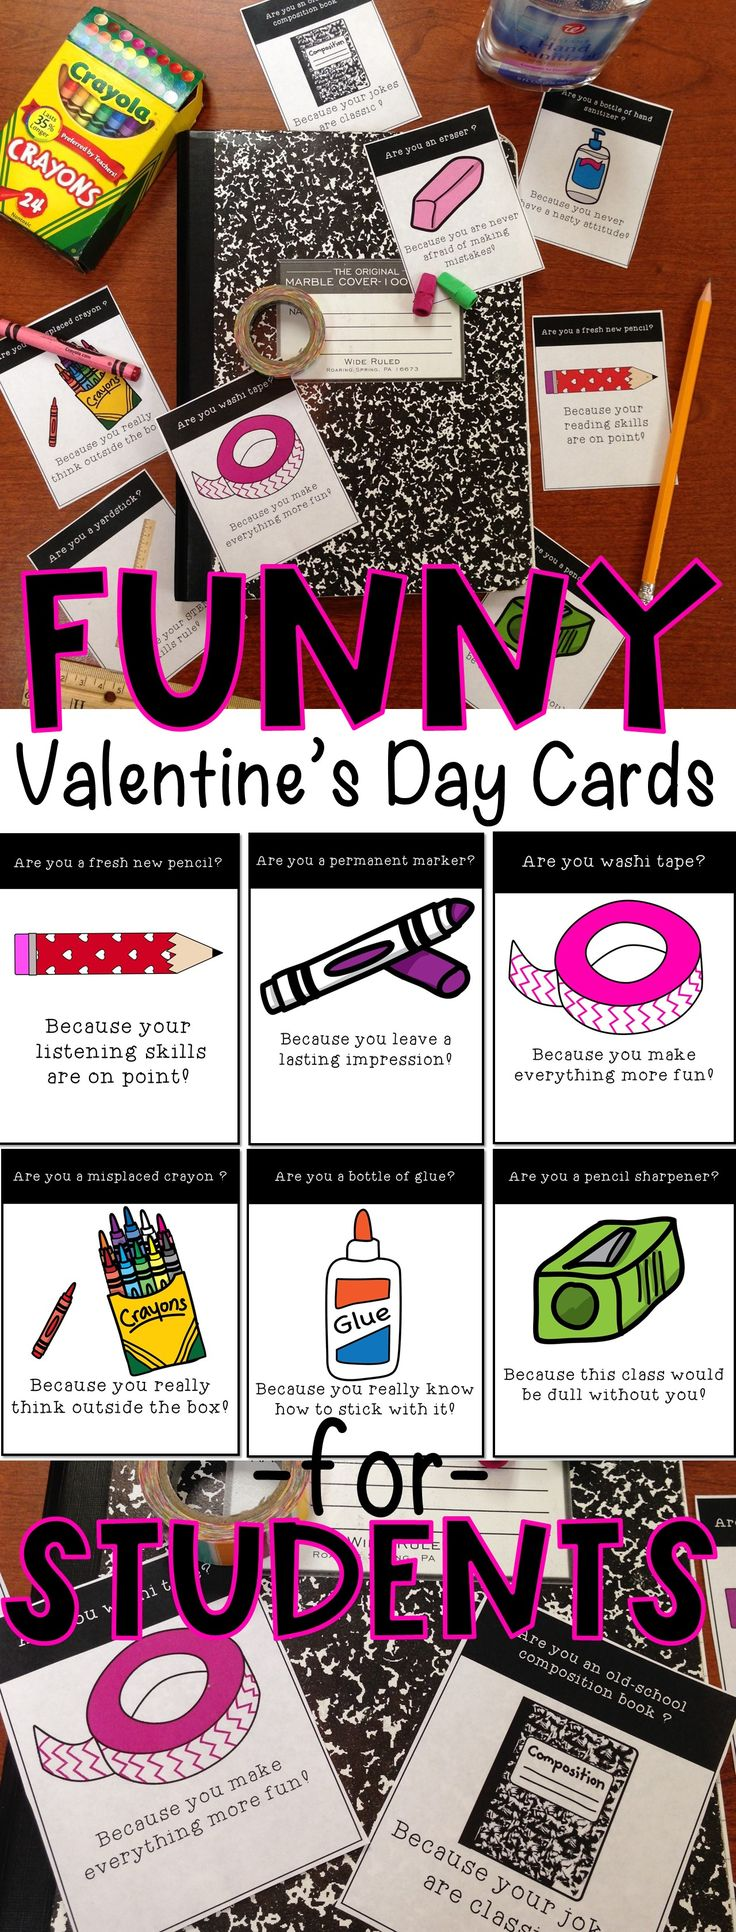 Funny Valentine's Day Cards for Students, Geeky Pickup Lines, Nerdy Pickup Lines, Student Valentines from Teachers, Funny Student Valentine Cards, Middle School Valentine Cards, High School Valentine Cards